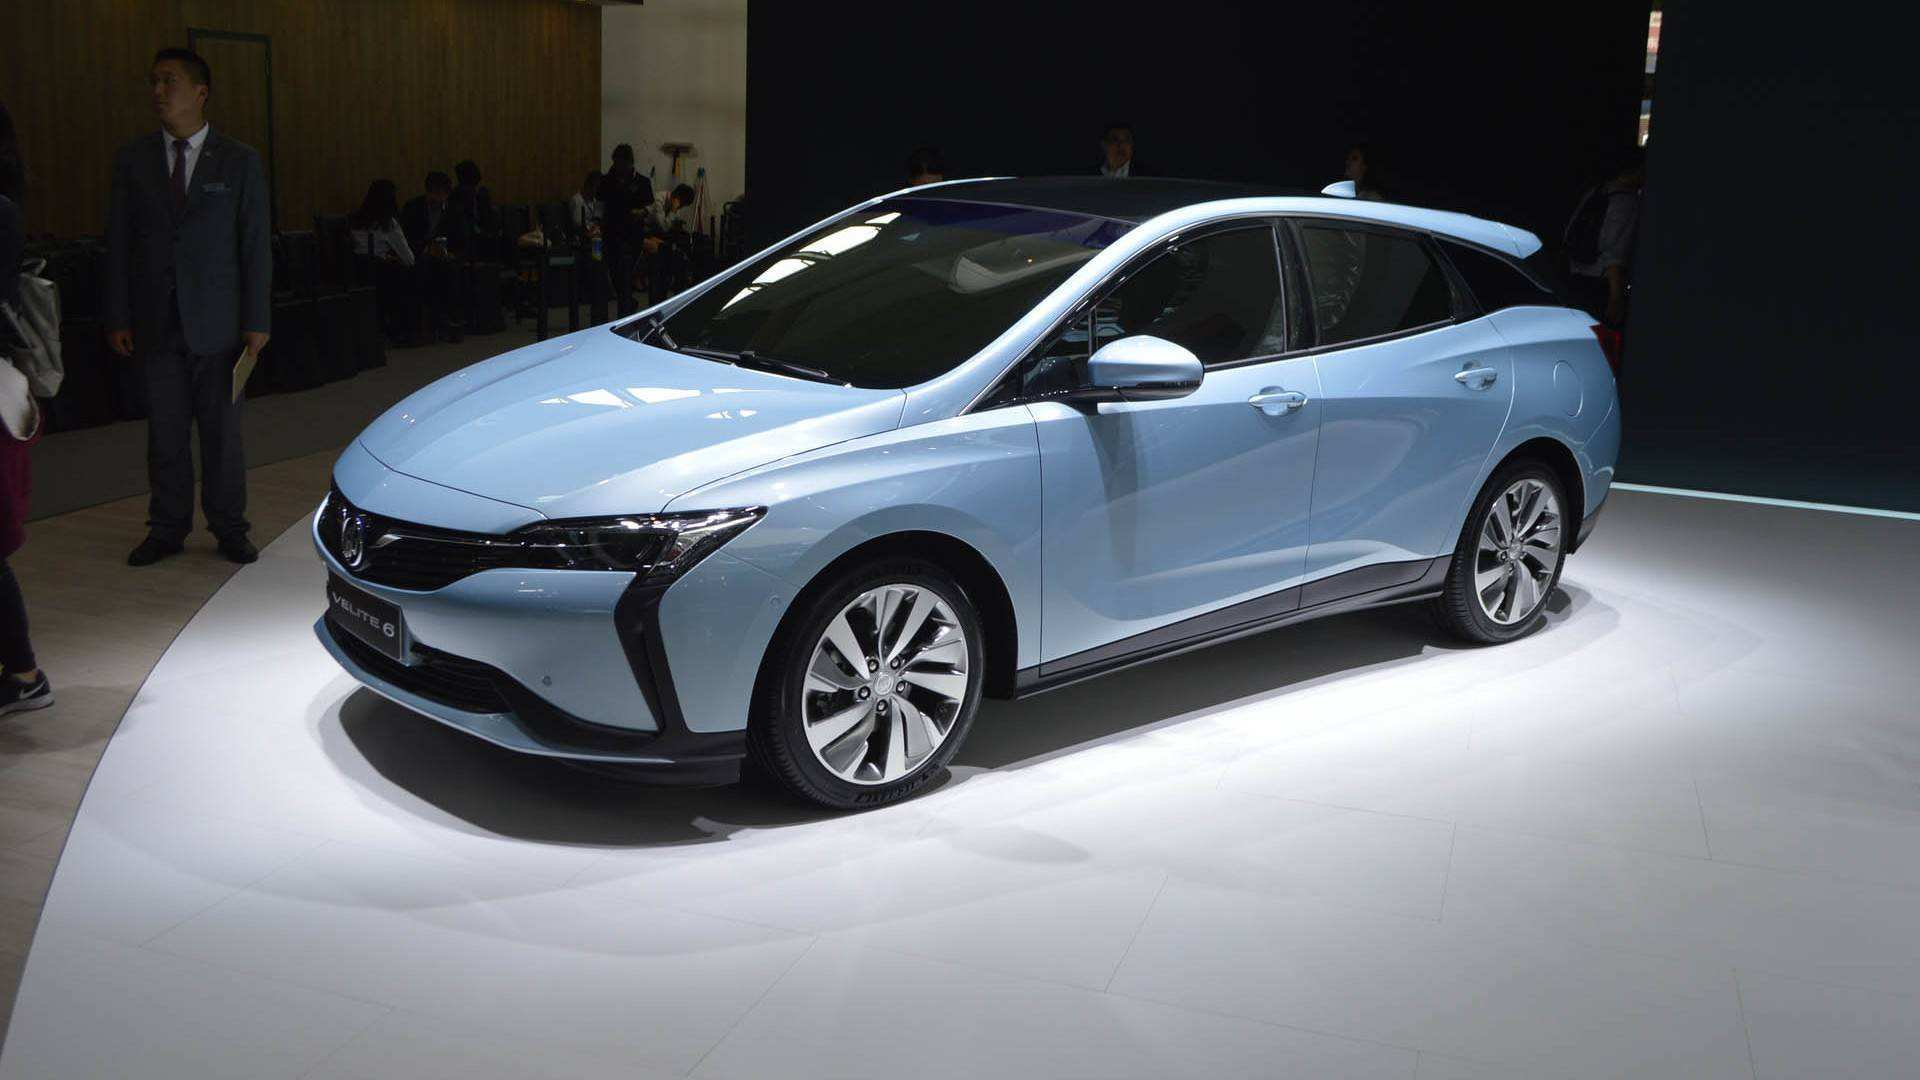 92 All New 2020 Buick Velite 6 Exterior And Interior